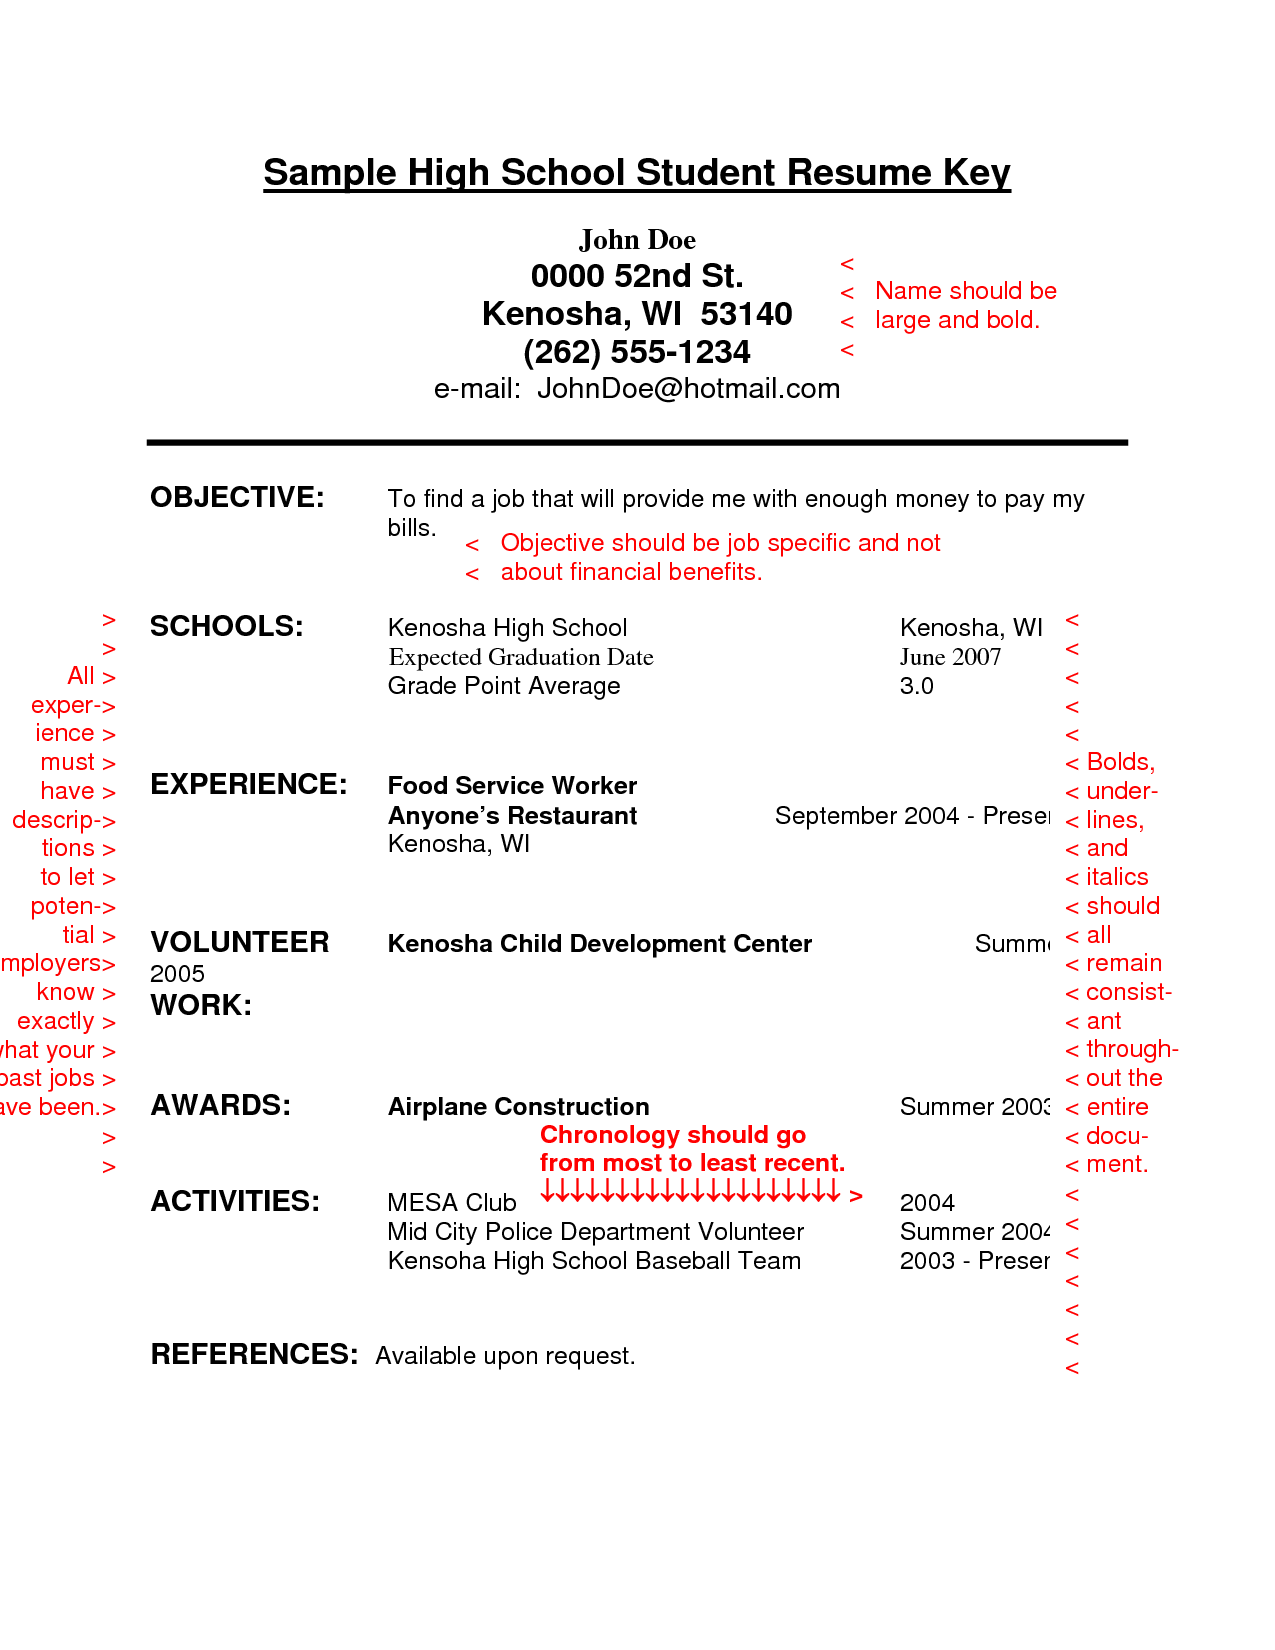 Resume Examples For High School Students 1 Resume Examples